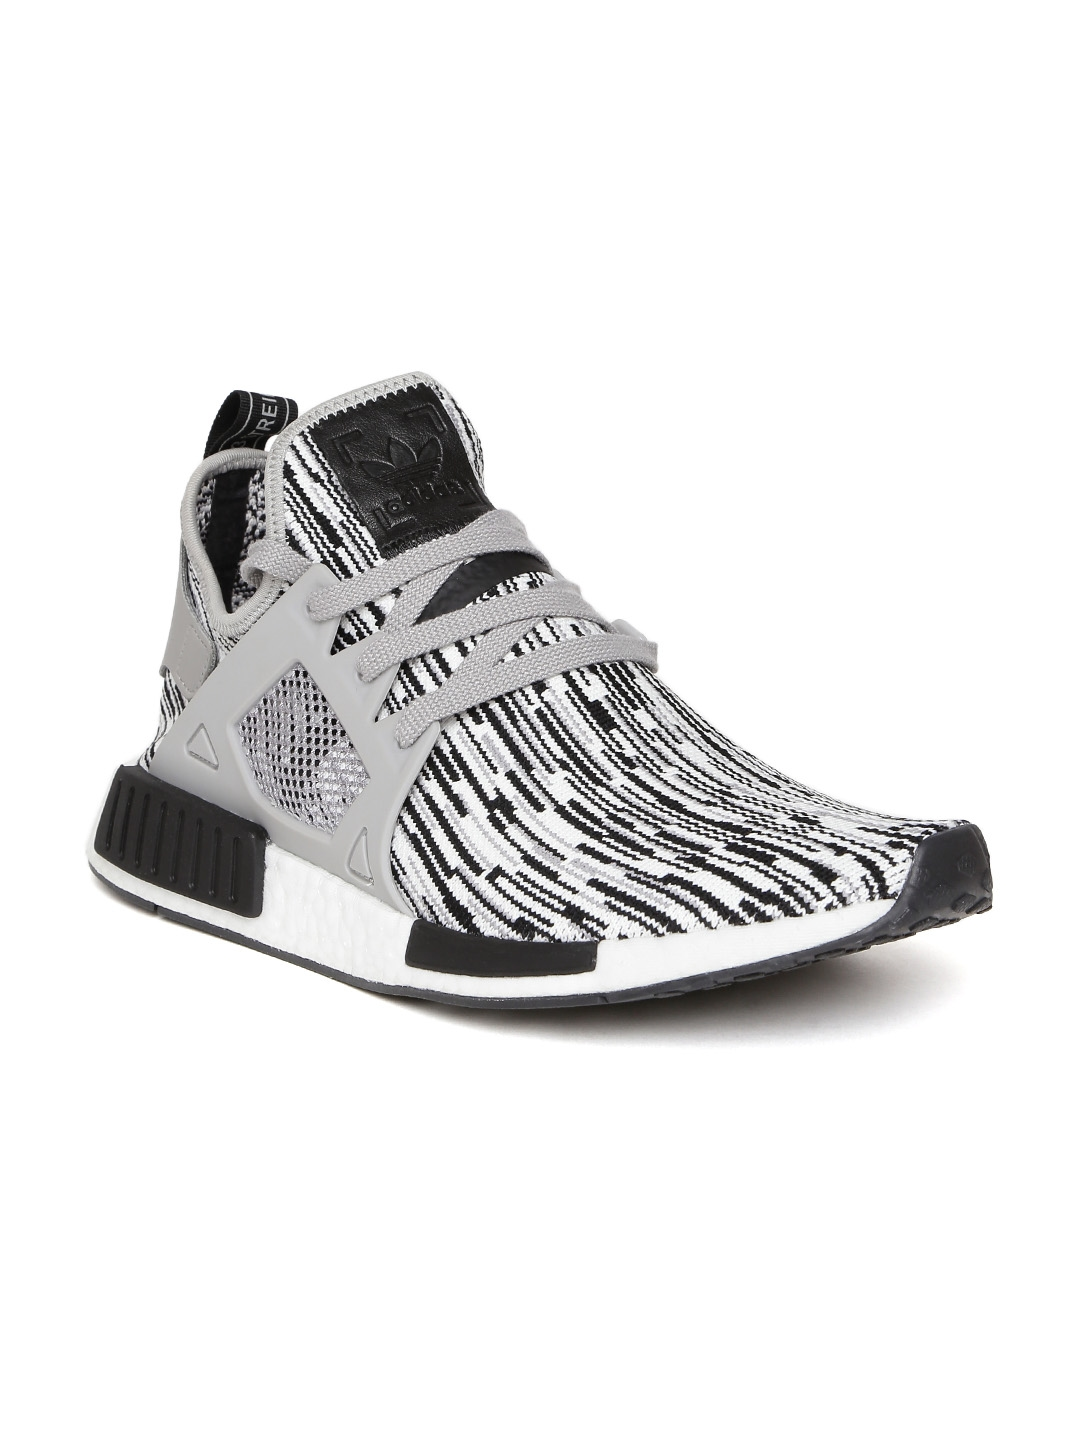 b92a6618bc197 Buy ADIDAS Originals Men White   Black NMD XR1 PK Sneakers - Casual ...